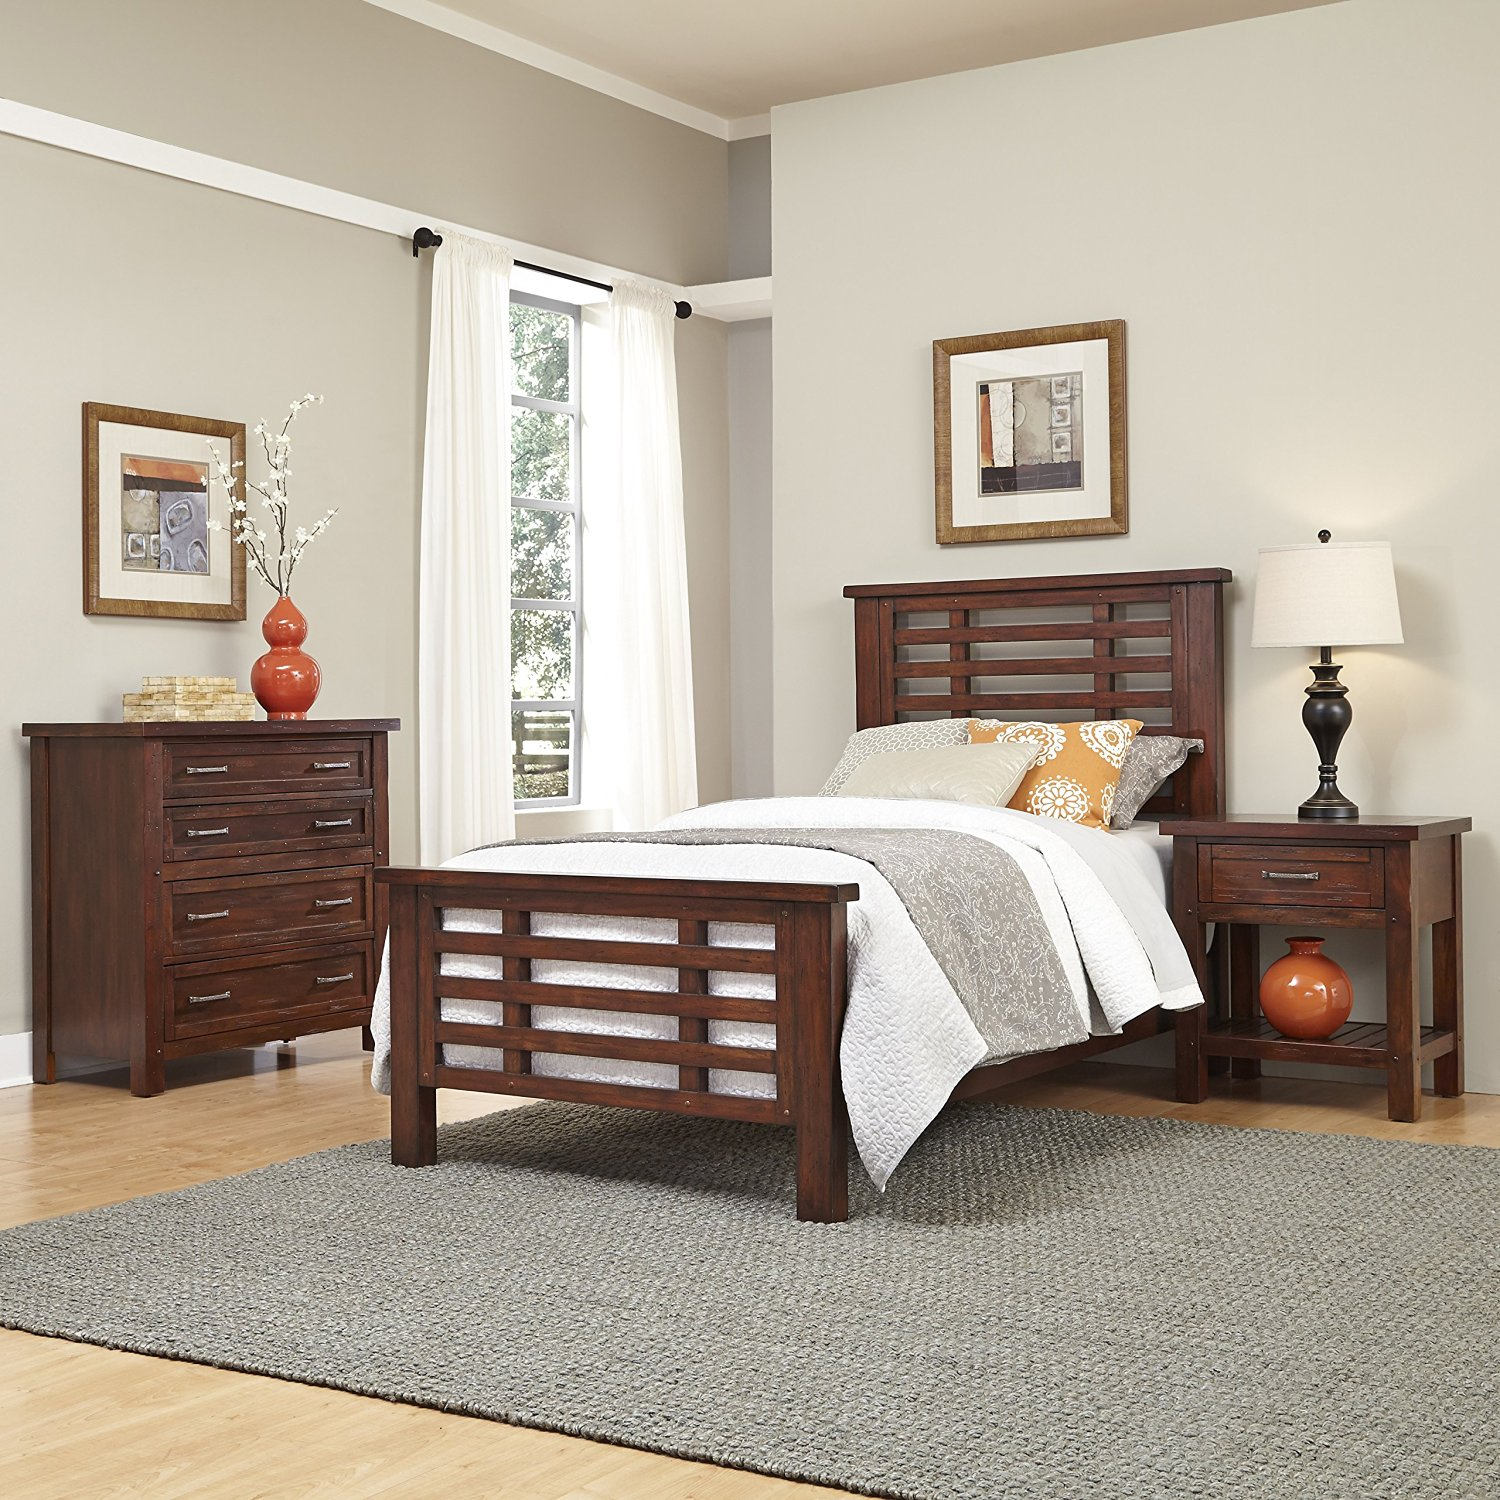 Home Styles 5410-4021 Cabin Creek Chestnut Finish Bed, Night Stand & Chest, Twin